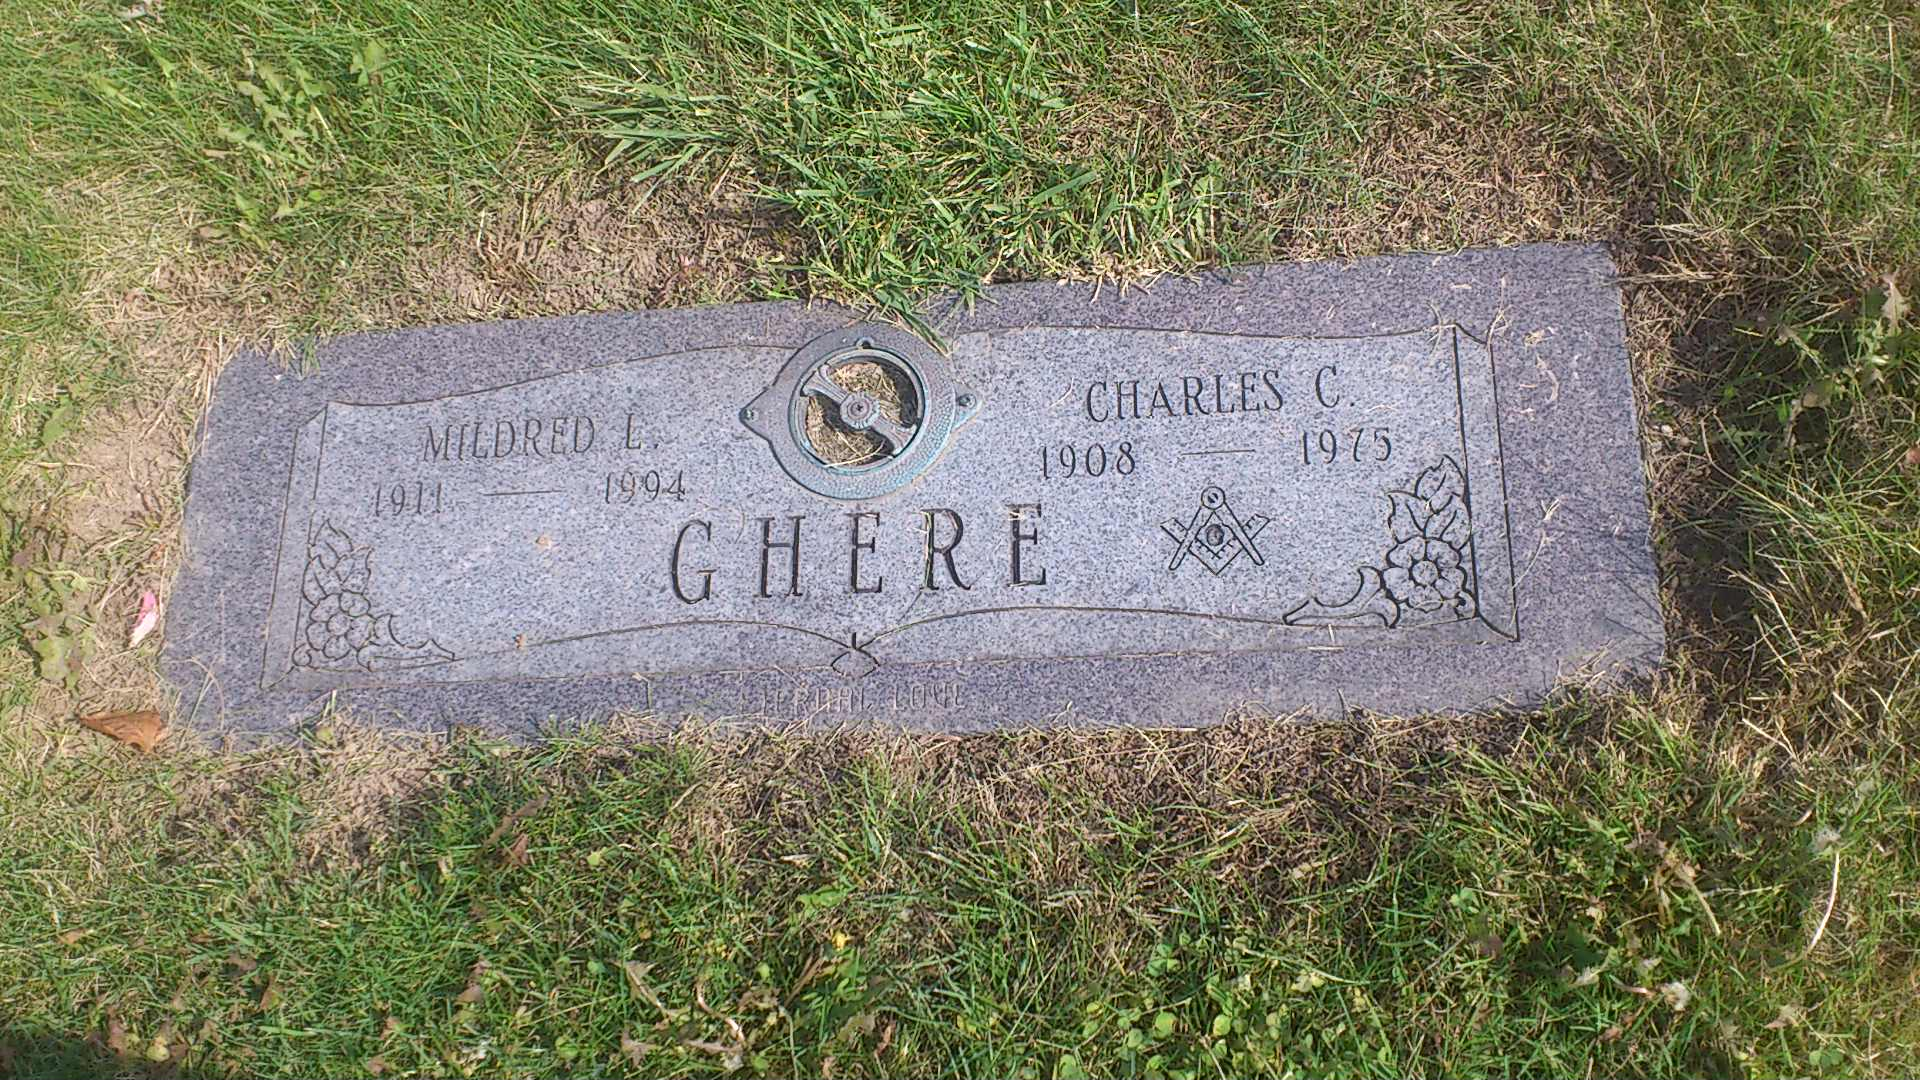 Charles Ghere